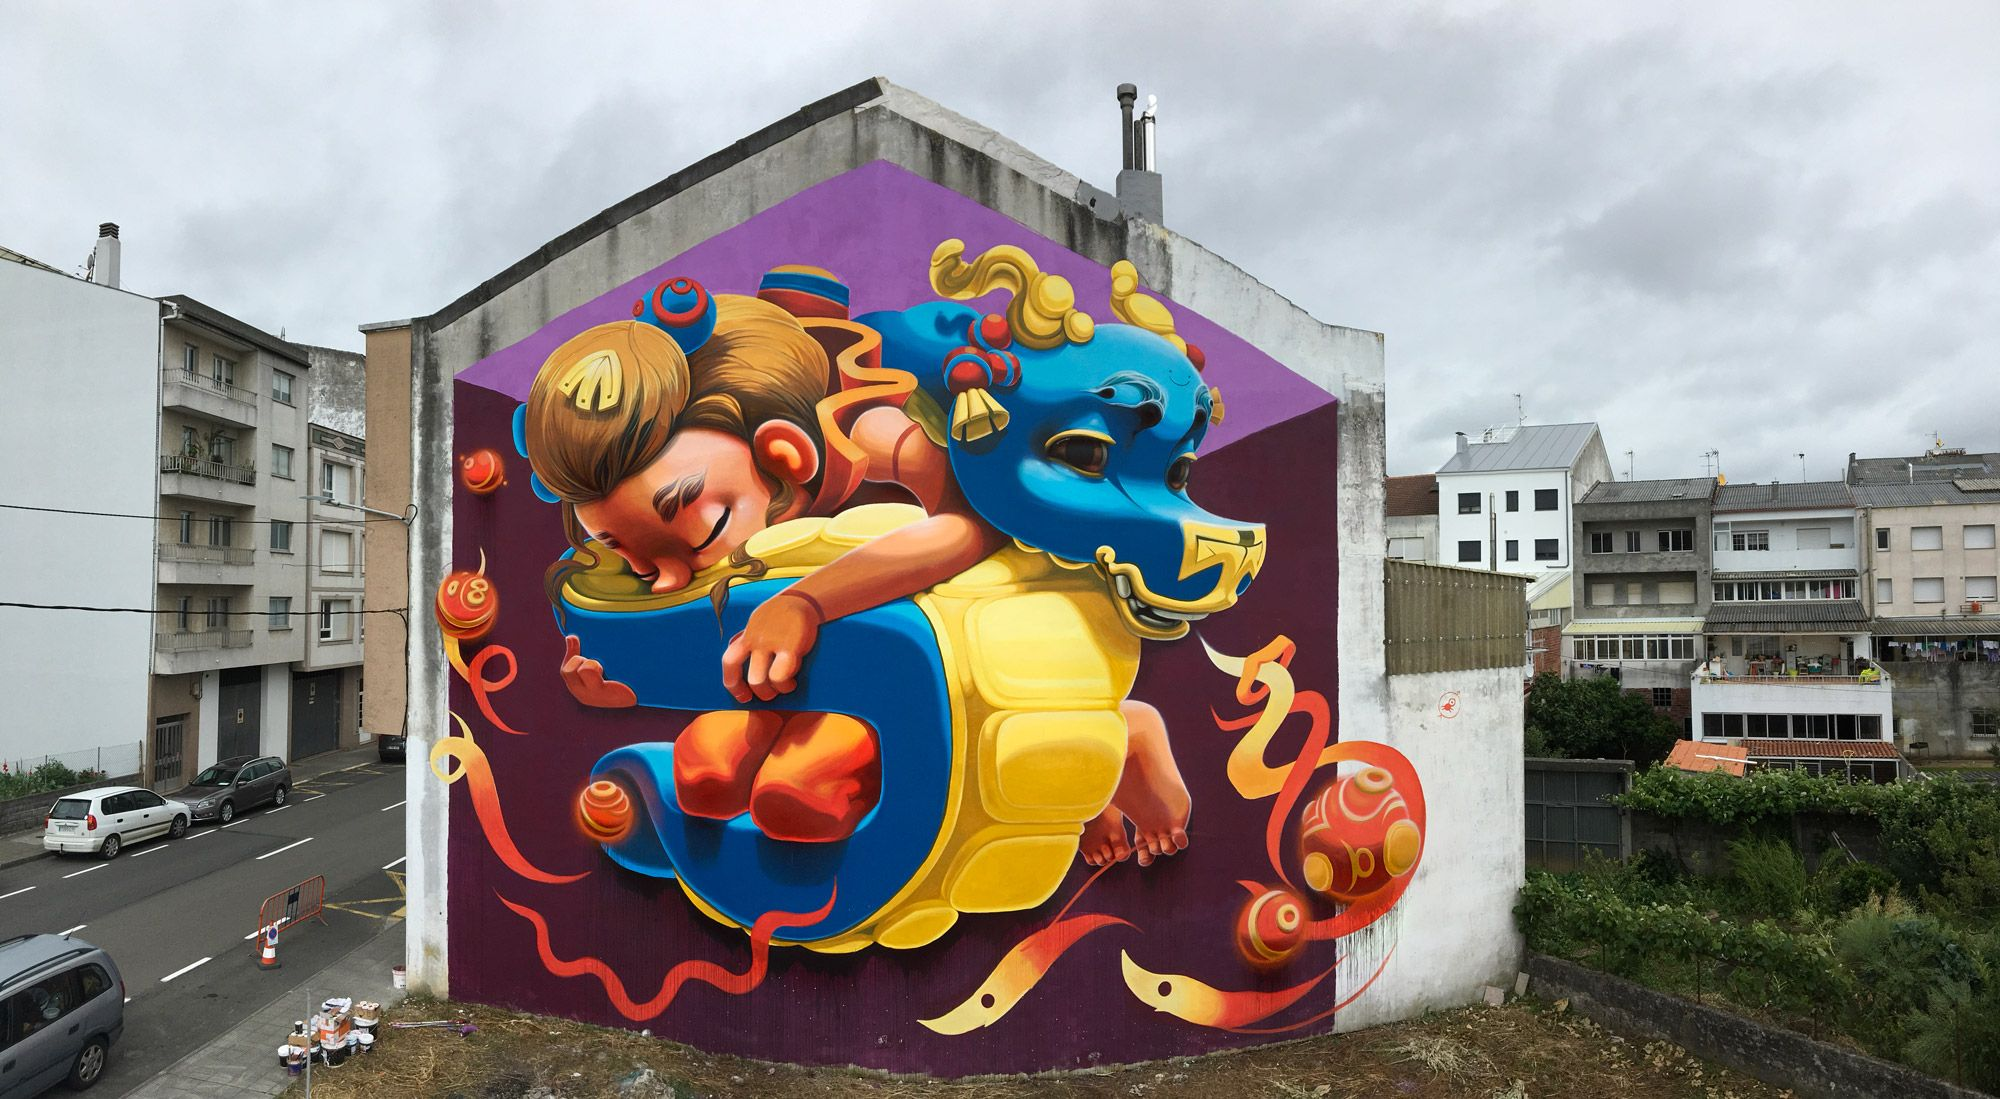 Street Art by Animalito, located in Carballo, Spain